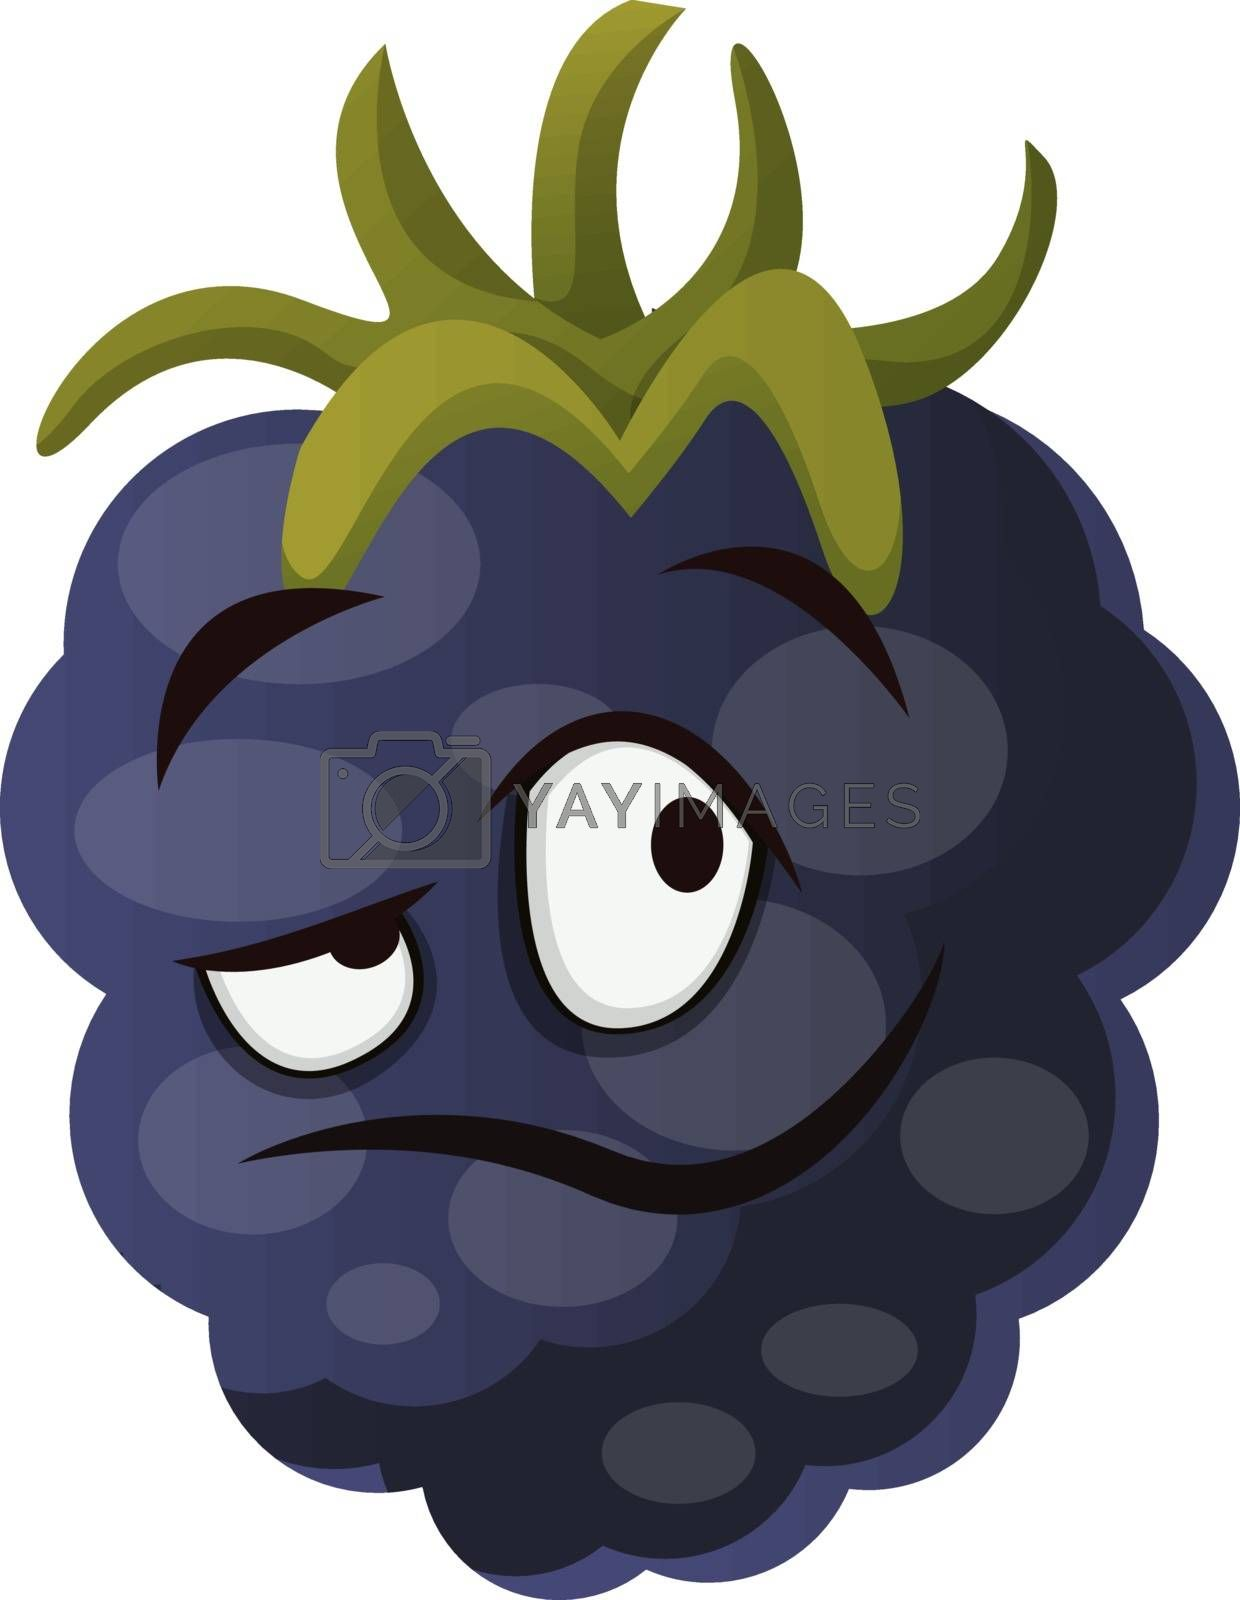 Royalty free image of Mulberry monster face illustration vector on white background by Morphart